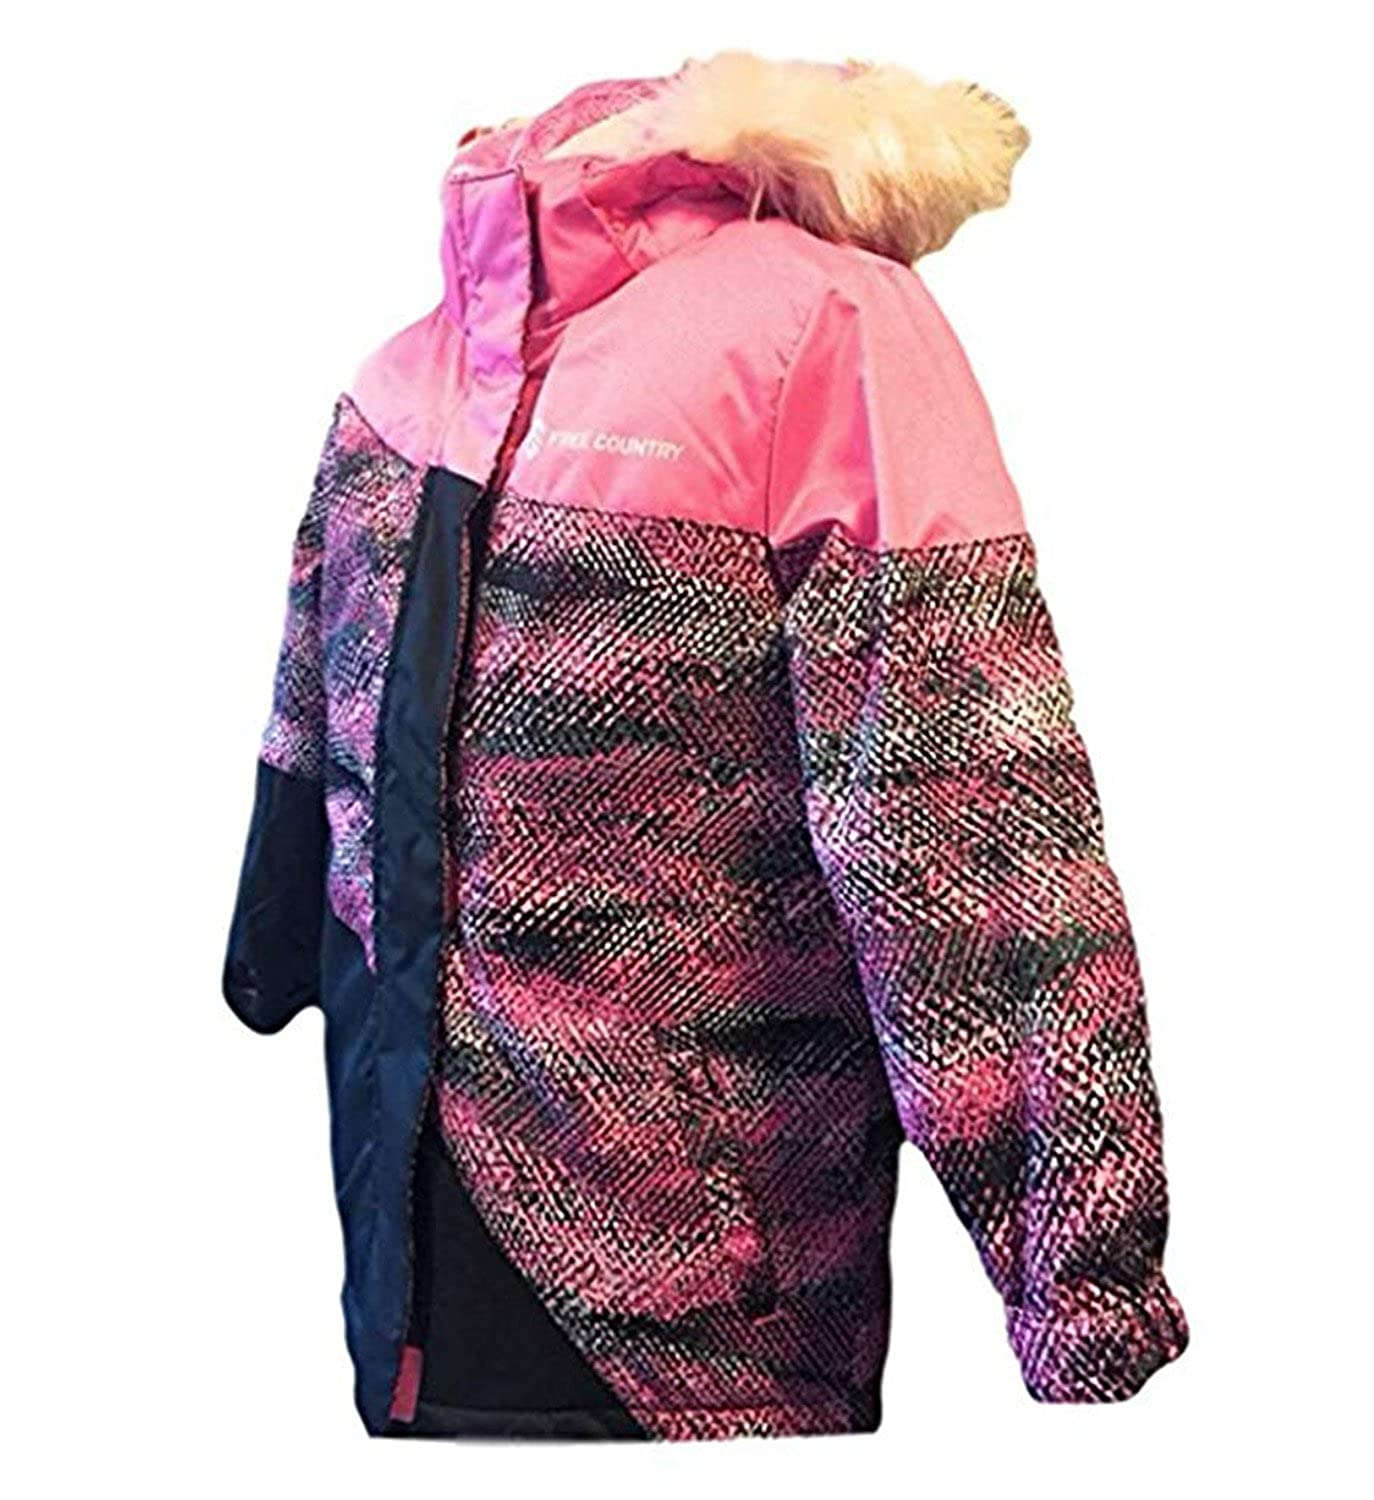 Free Country Girls Radiance Dobby Boarder Winter Coat Faux Fur Removable Hoodie Jacket, Pink Sizzle Pink Sizzle (3T)